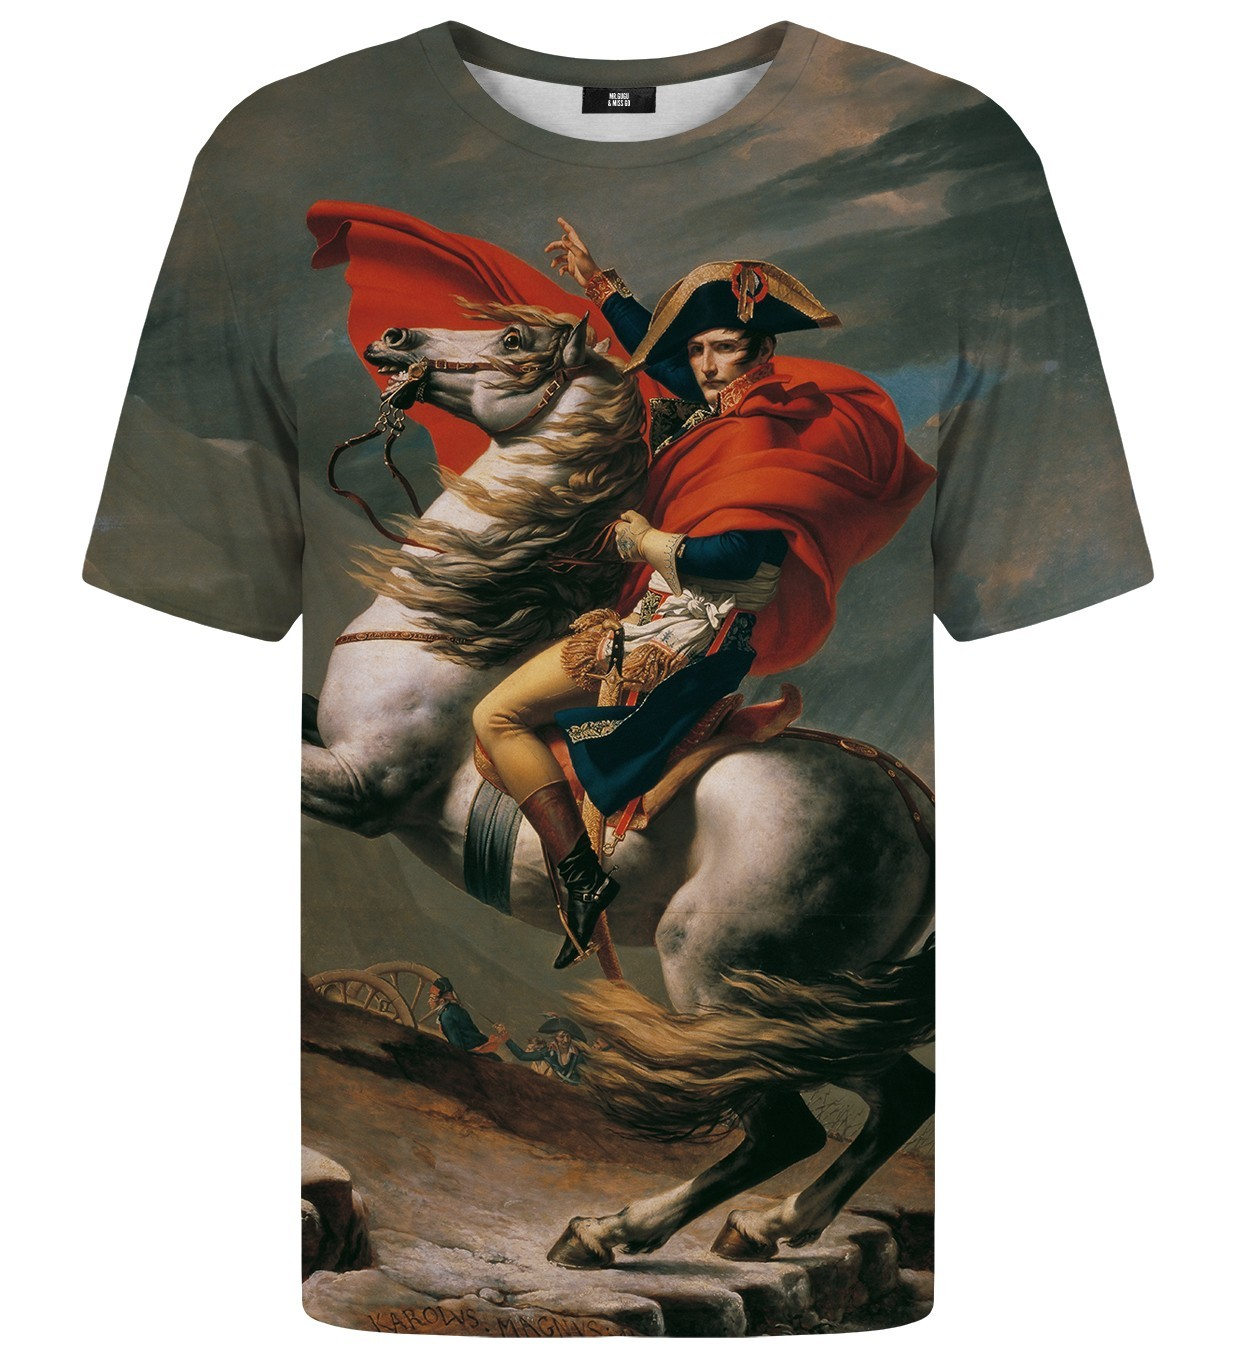 Napoleon Crossing the Alps Printed T-Shirt | Unisex | XS-2XL | Mr.Gugu & Miss Go